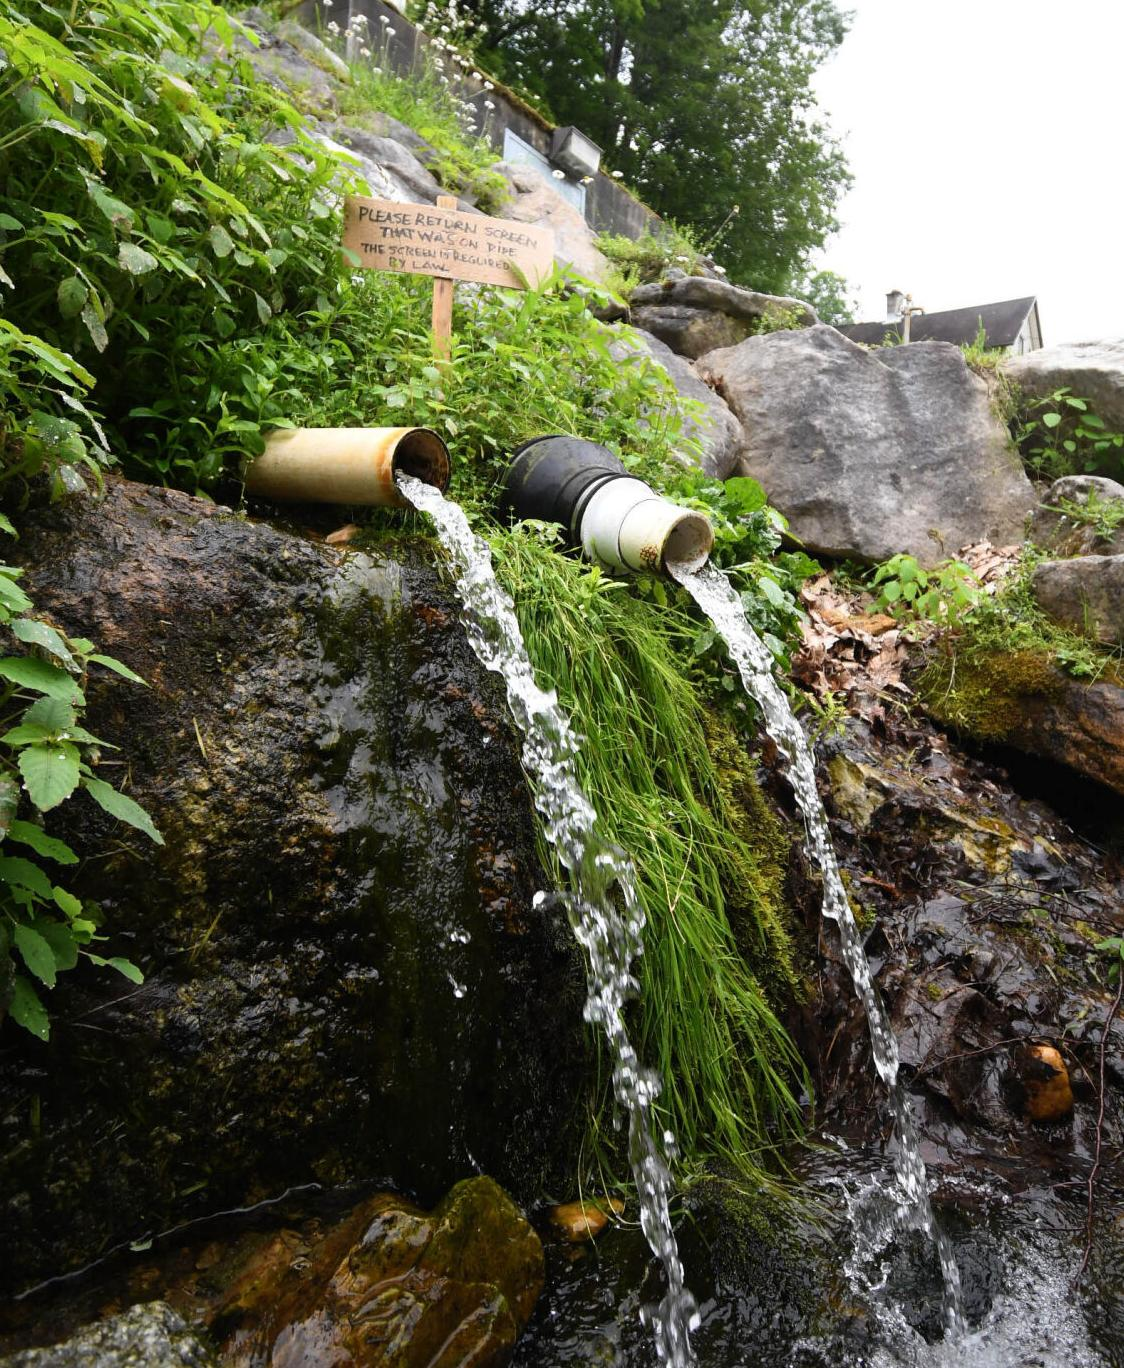 Spring water flows out of two spouts